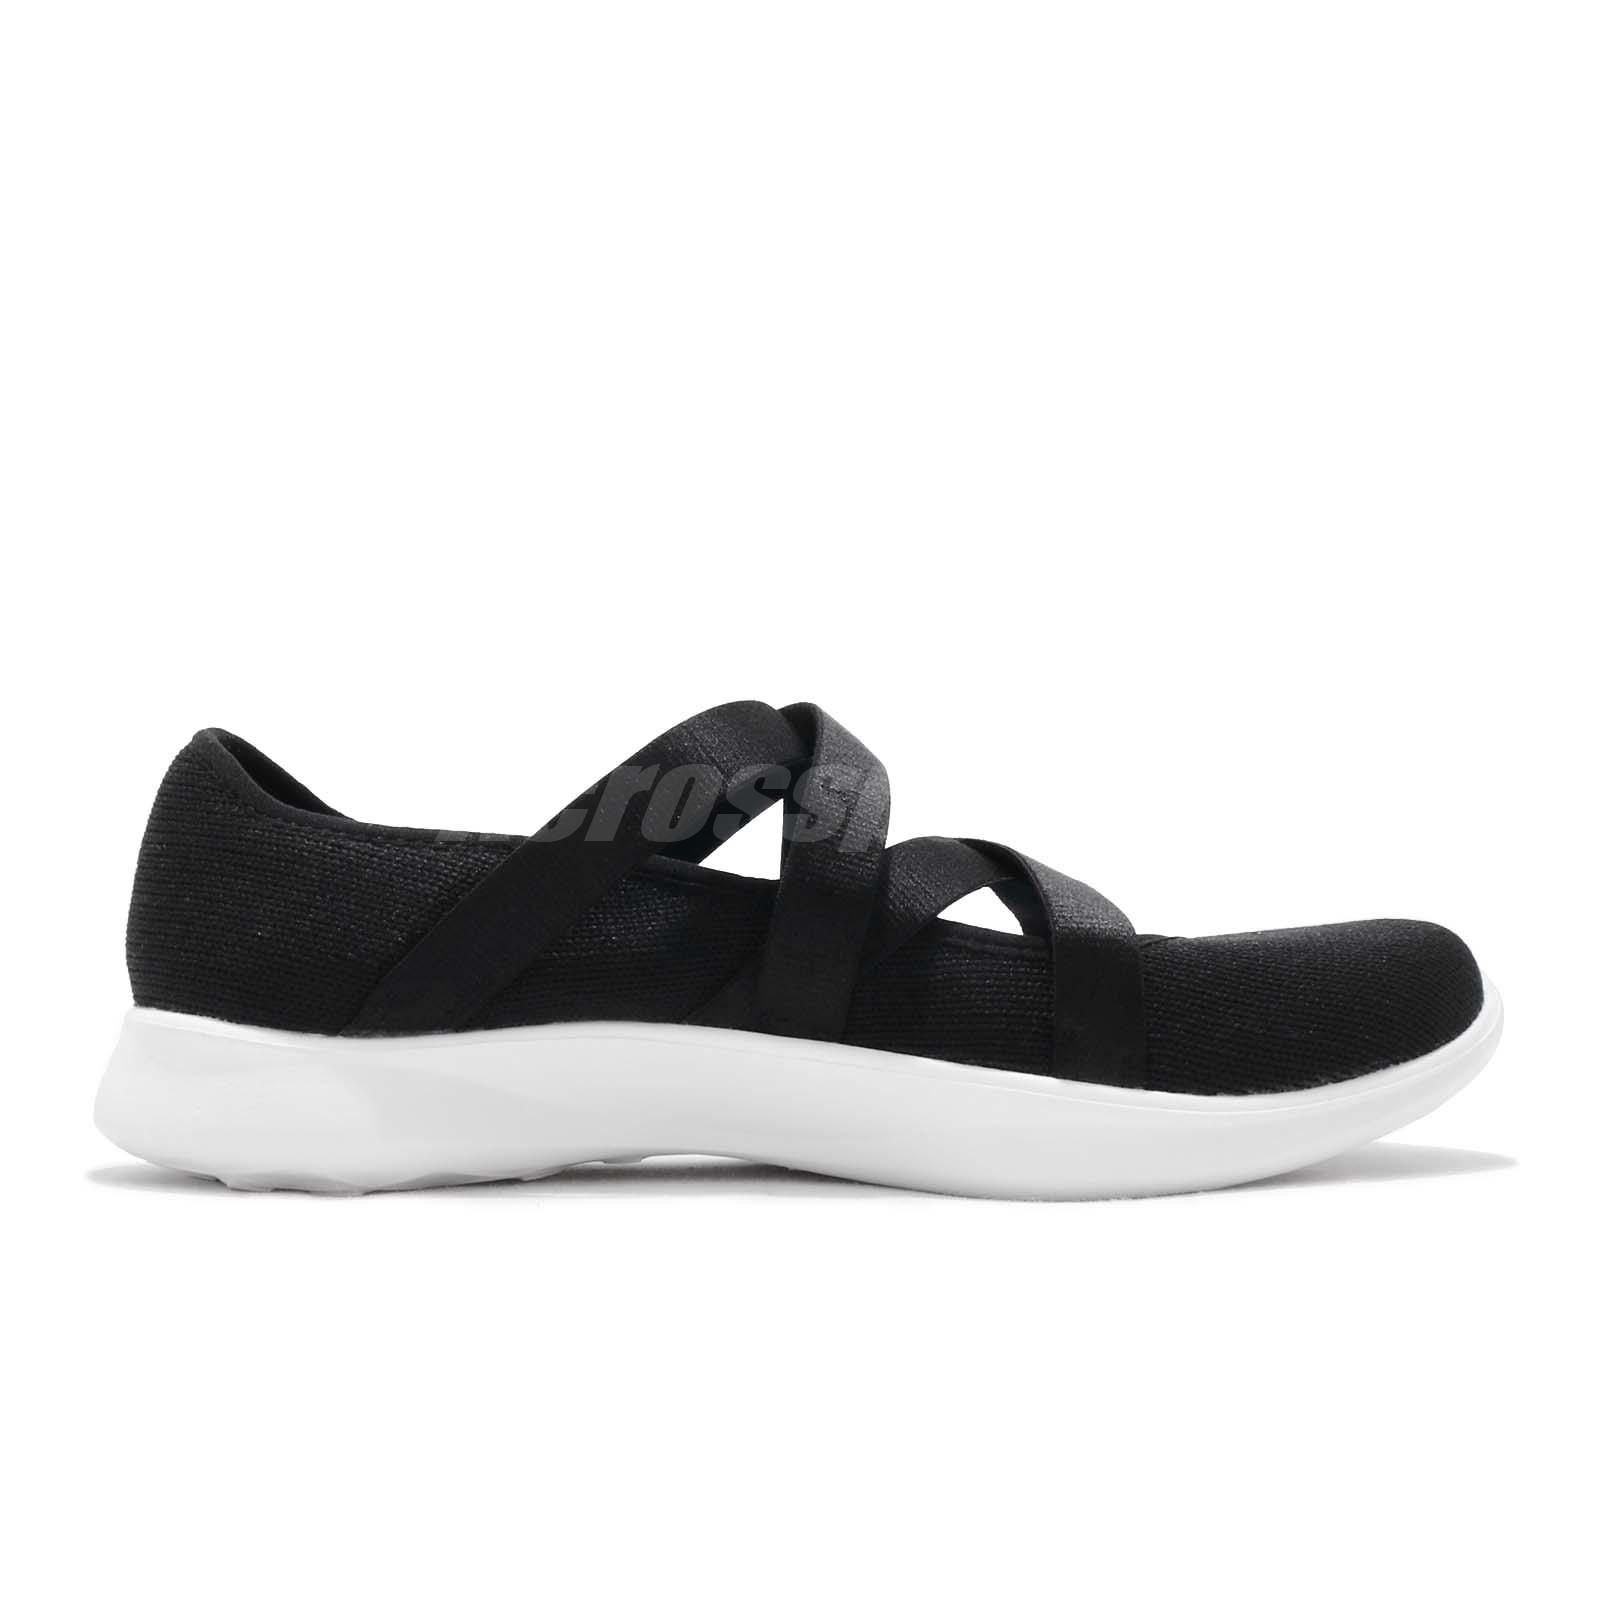 4c9f47904e17 Skechers Serene-Elation Black White Women Slip On Walking Casual ...